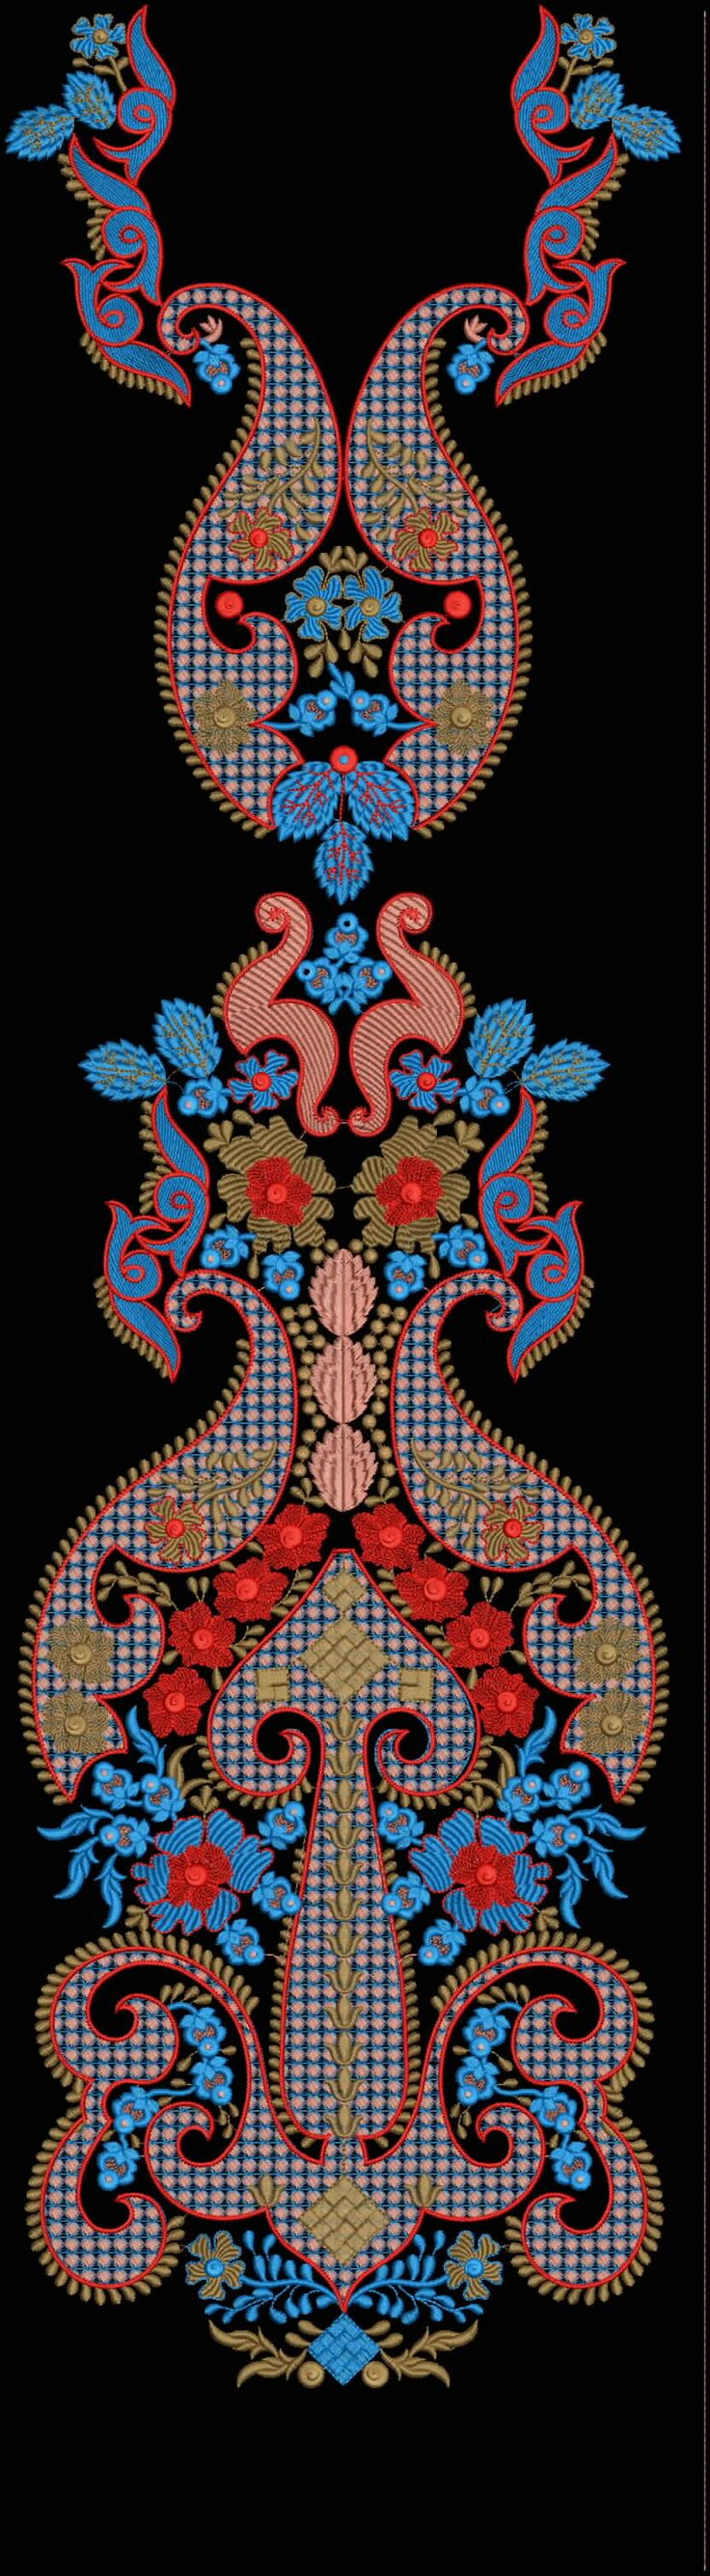 Latest Embroidery Designs For Sale, If U Want Embroidery Designs Plz Contact (Khalid Mahmood, +92-300-9406667) Design# Khushbu22